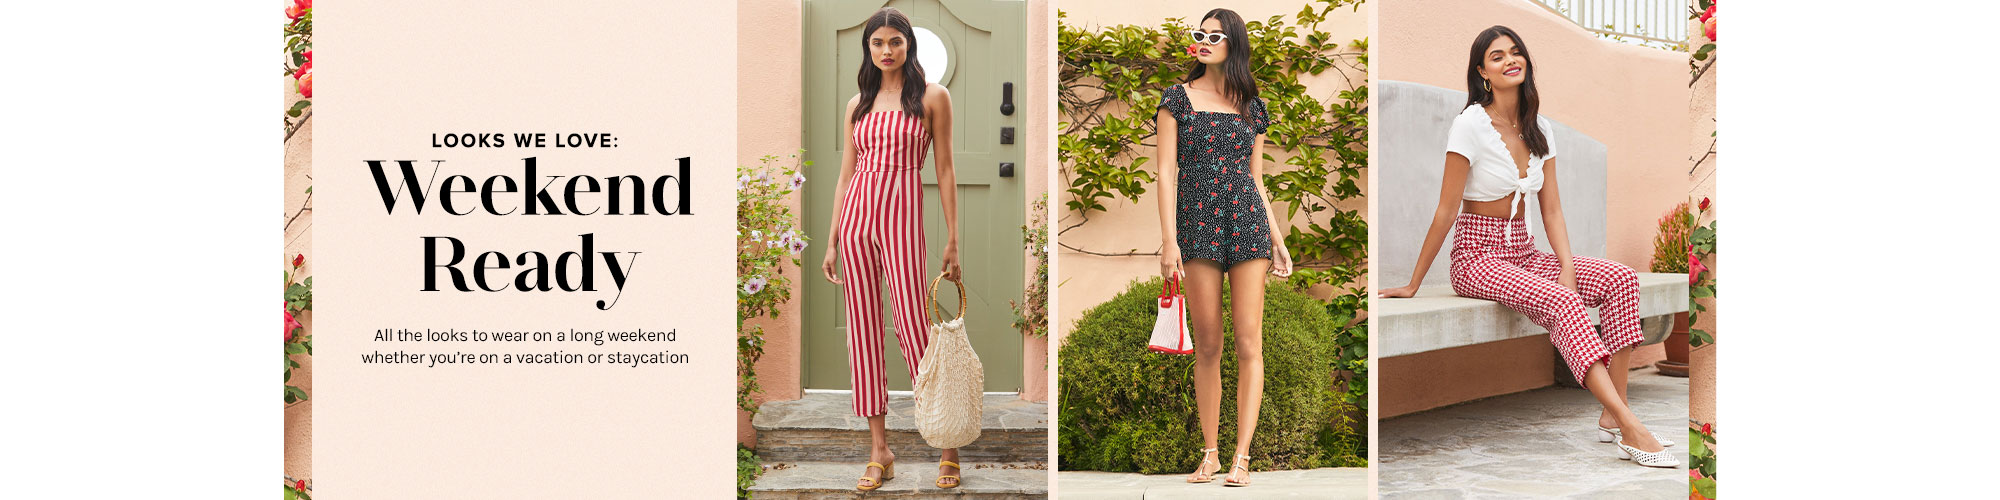 Looks We Love: Memorial Day Weekend. All the looks to wear on a long weekend whether you\u2019re on a vacation or staycation. Shop the Edit.